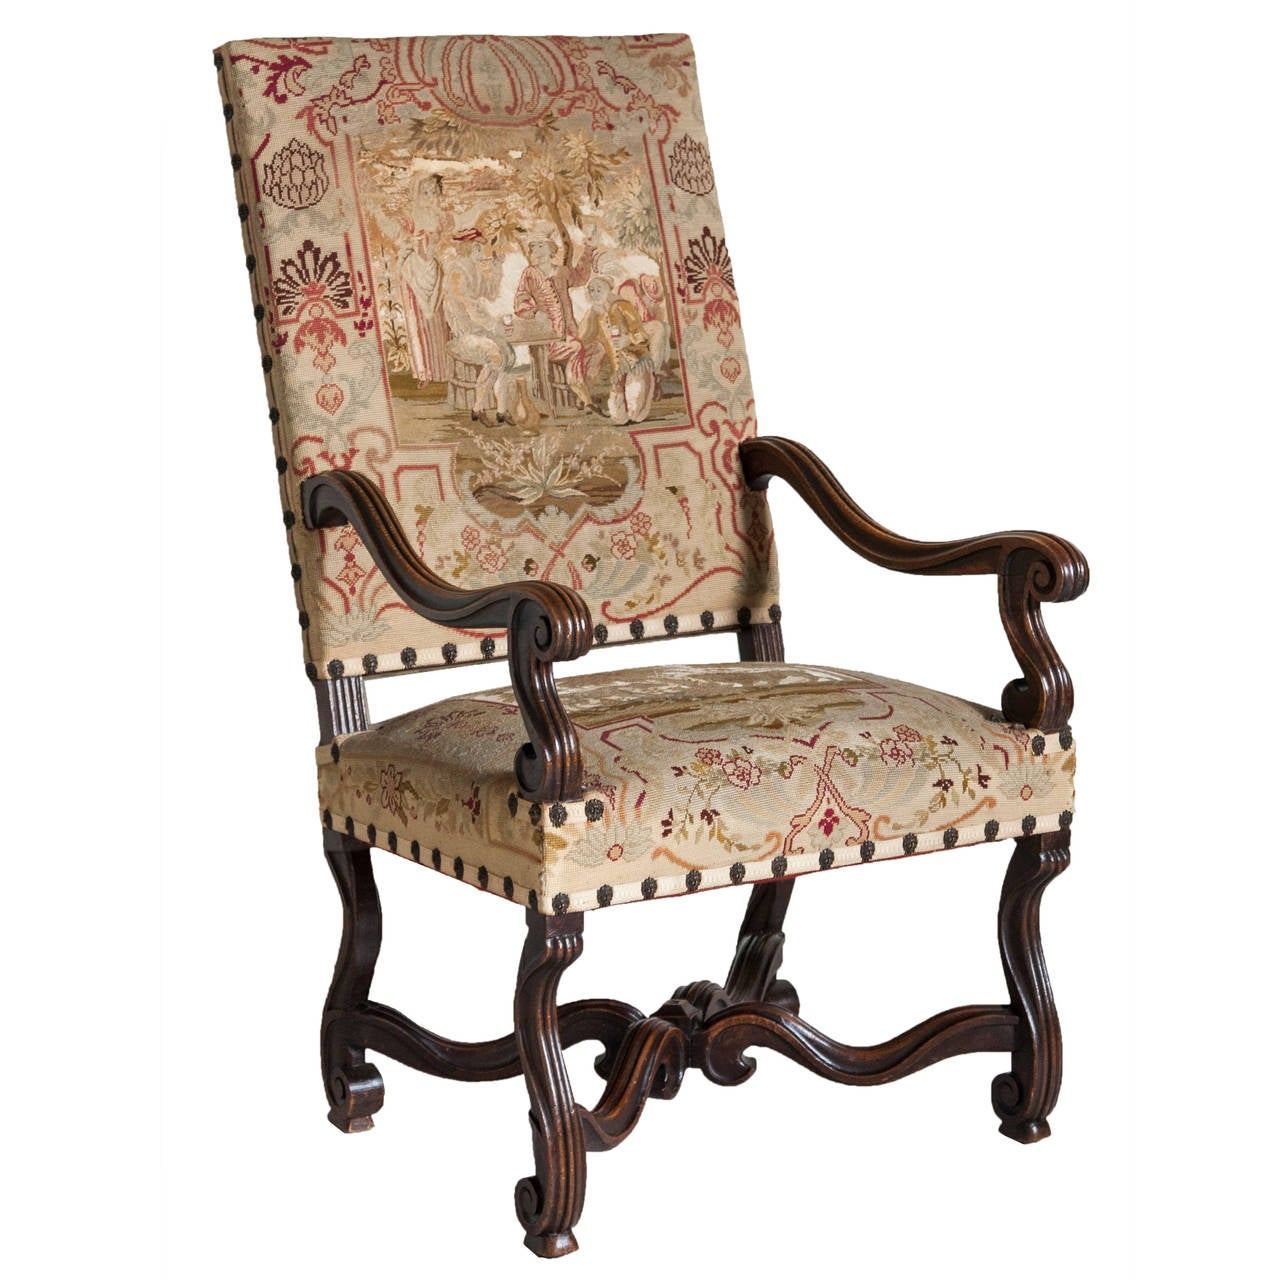 Louis The 14th Furniture 19th Century French Louis Xiv Style Armchair With Original